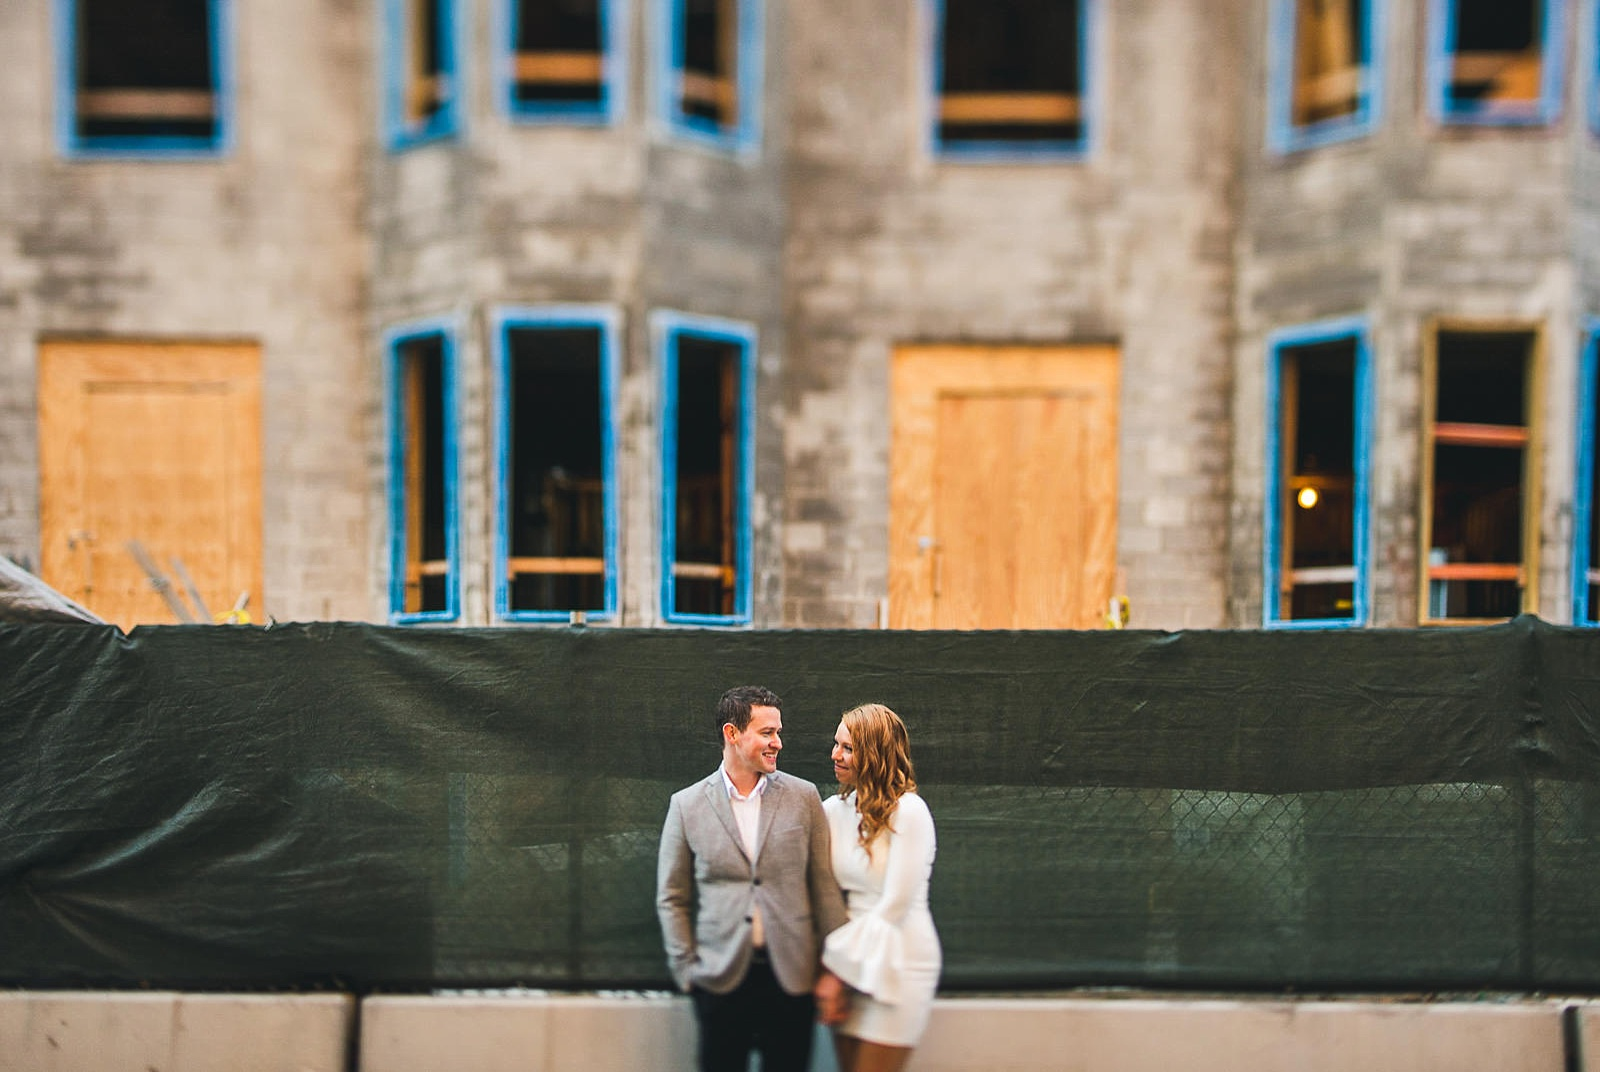 19 chicago engagement inspiration - Rooftop Chicago Engagement Session // Aubyn + Danny